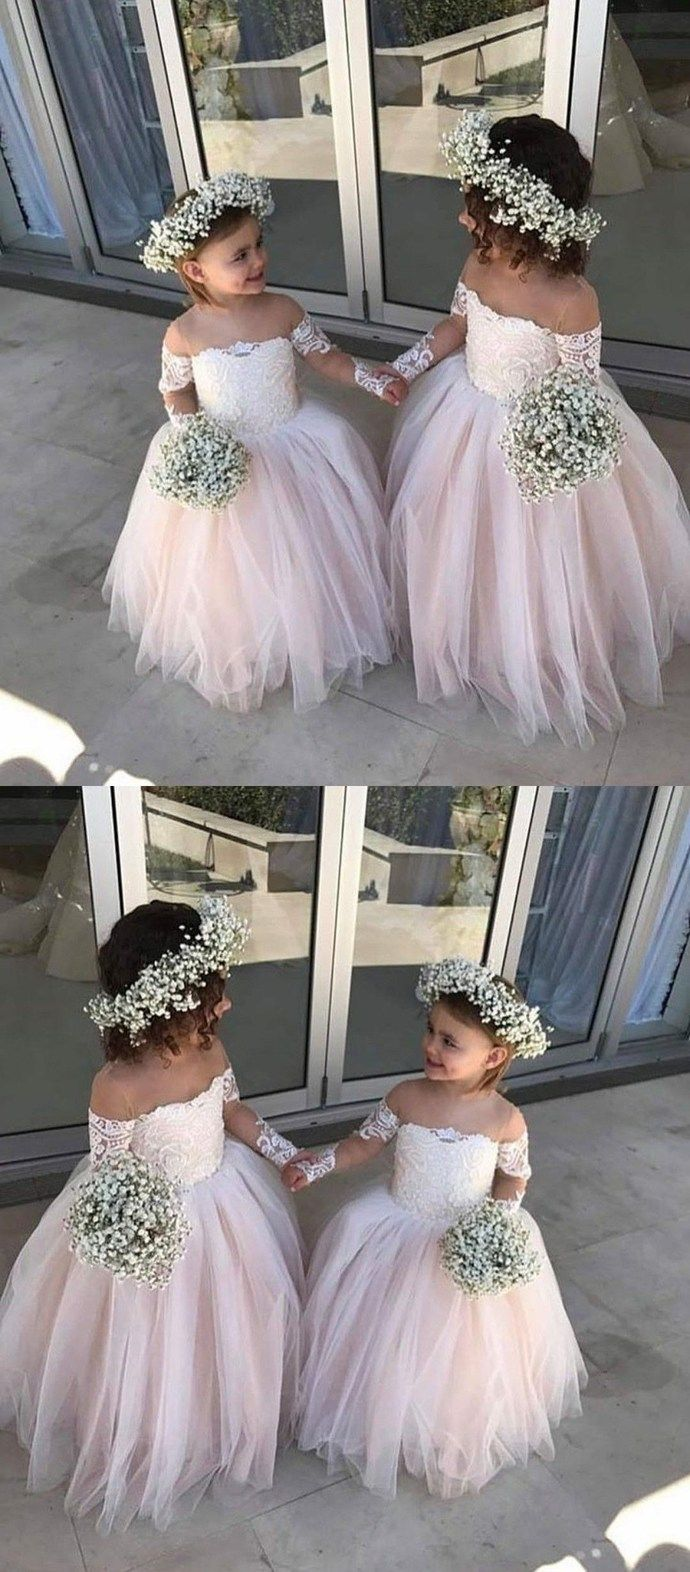 c8de30e433 Adorable Flower Girl Dresses For Weddings